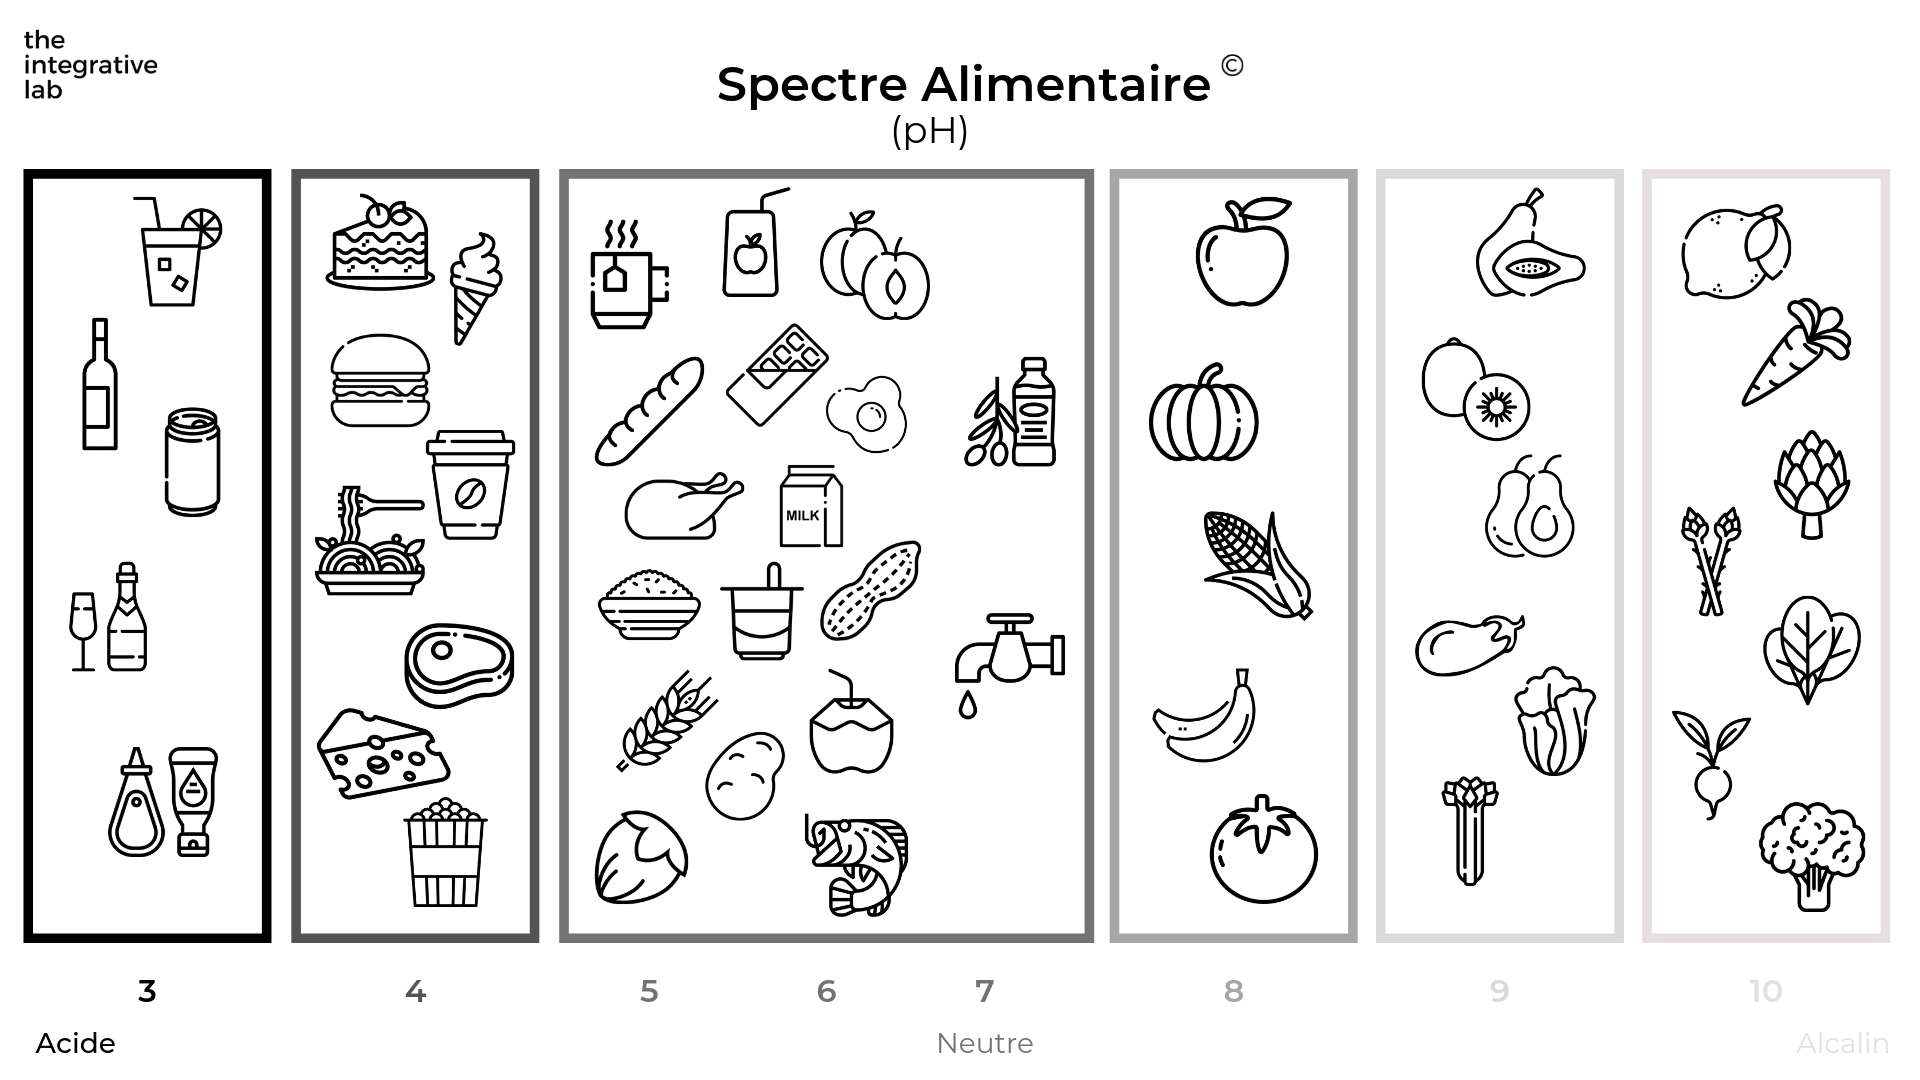 Spectre Alimentaire.png